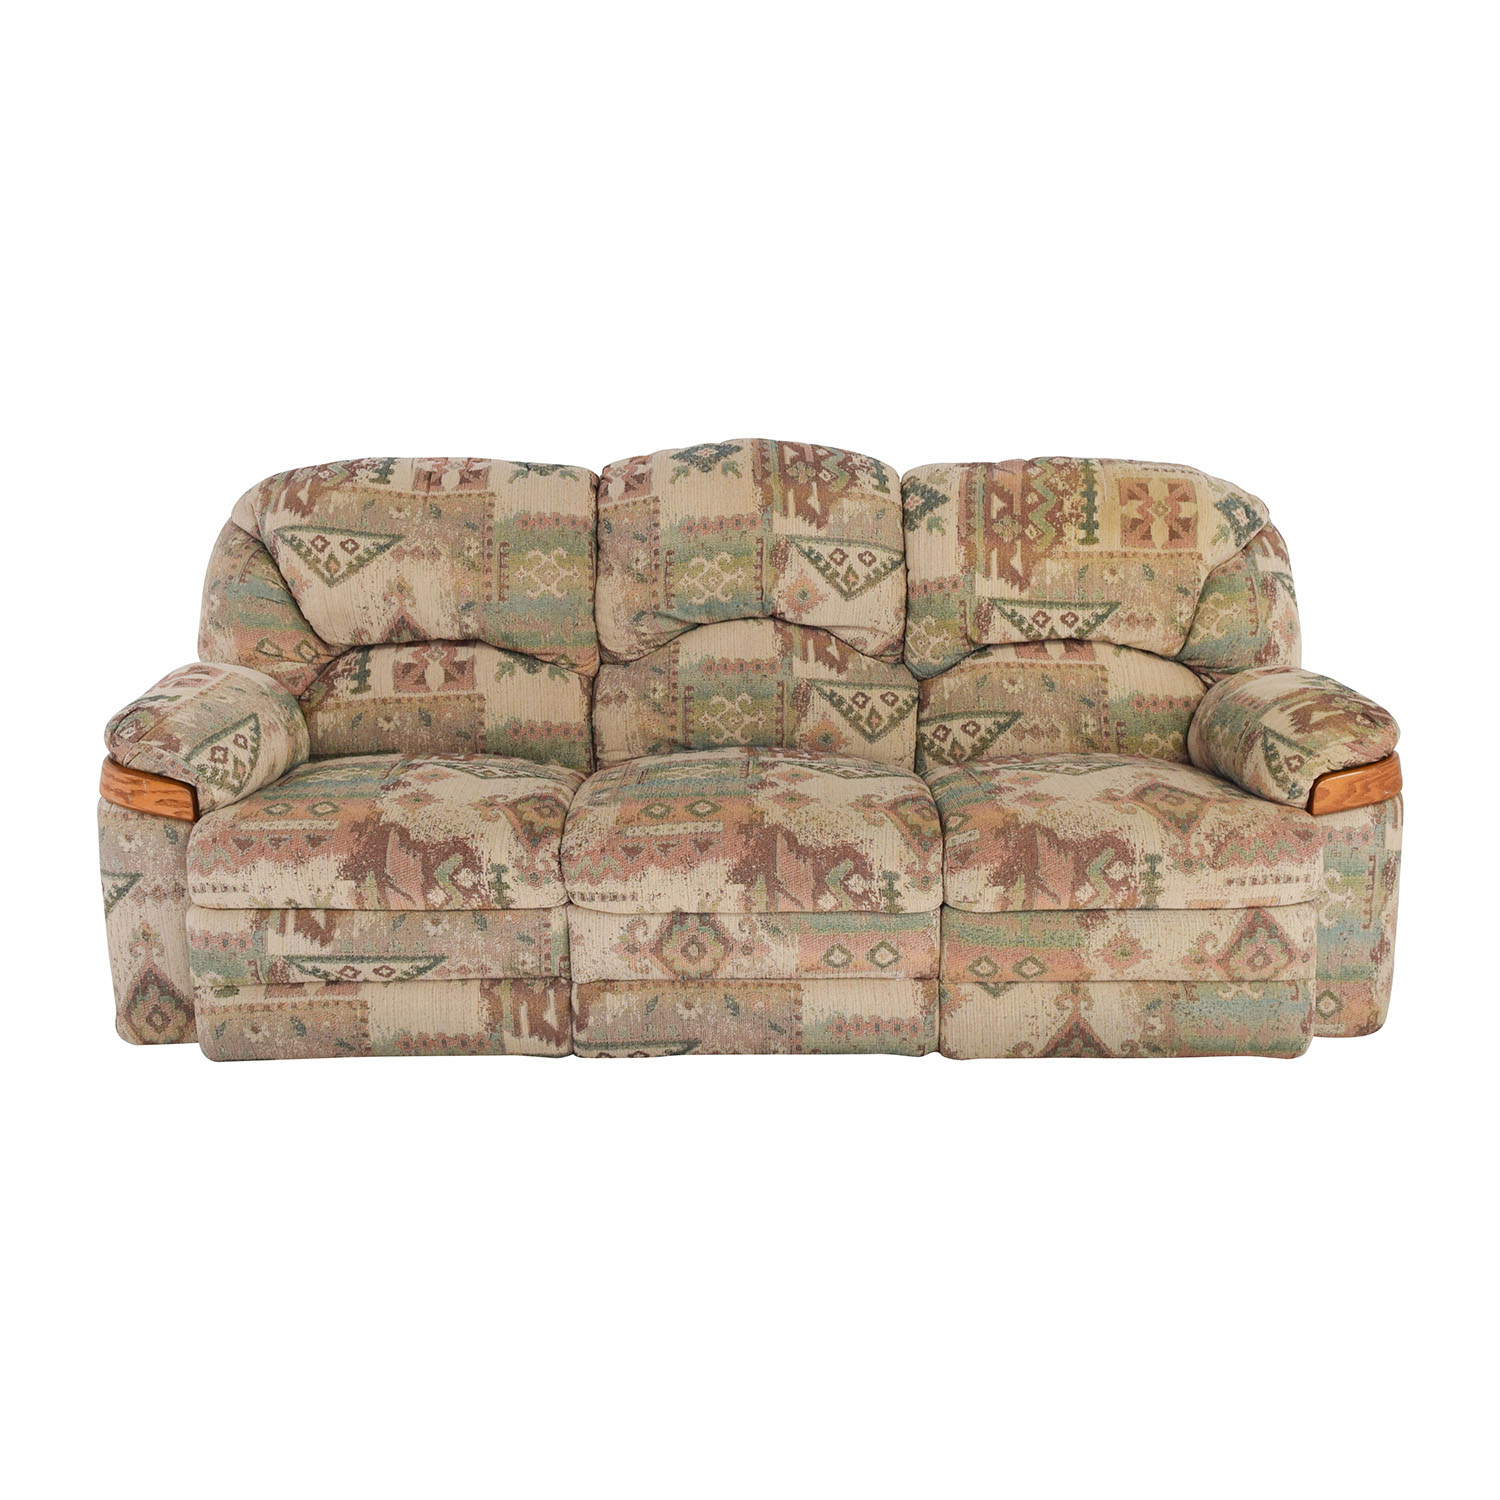 Patterned Fabric Recliner Sofa Classic Sofas